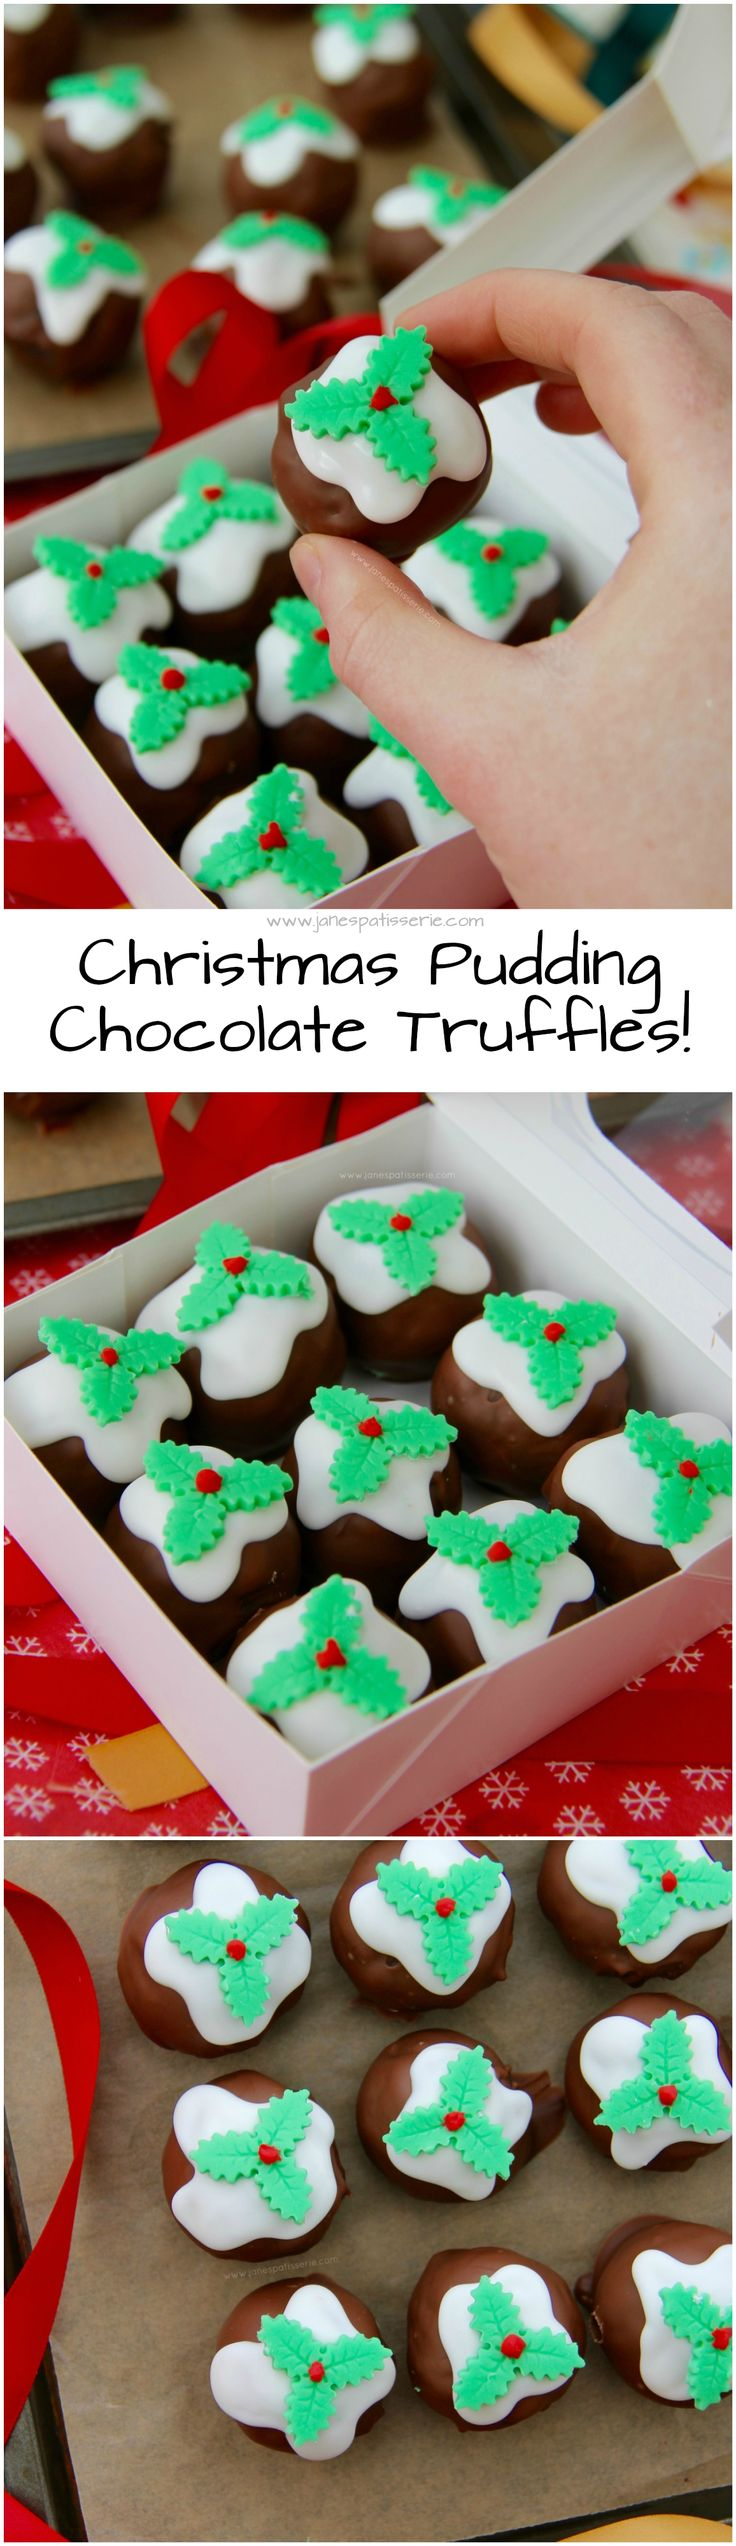 Christmas Pudding Chocolate Truffles Deliciously Chocolatey Made In To Mini Puddings